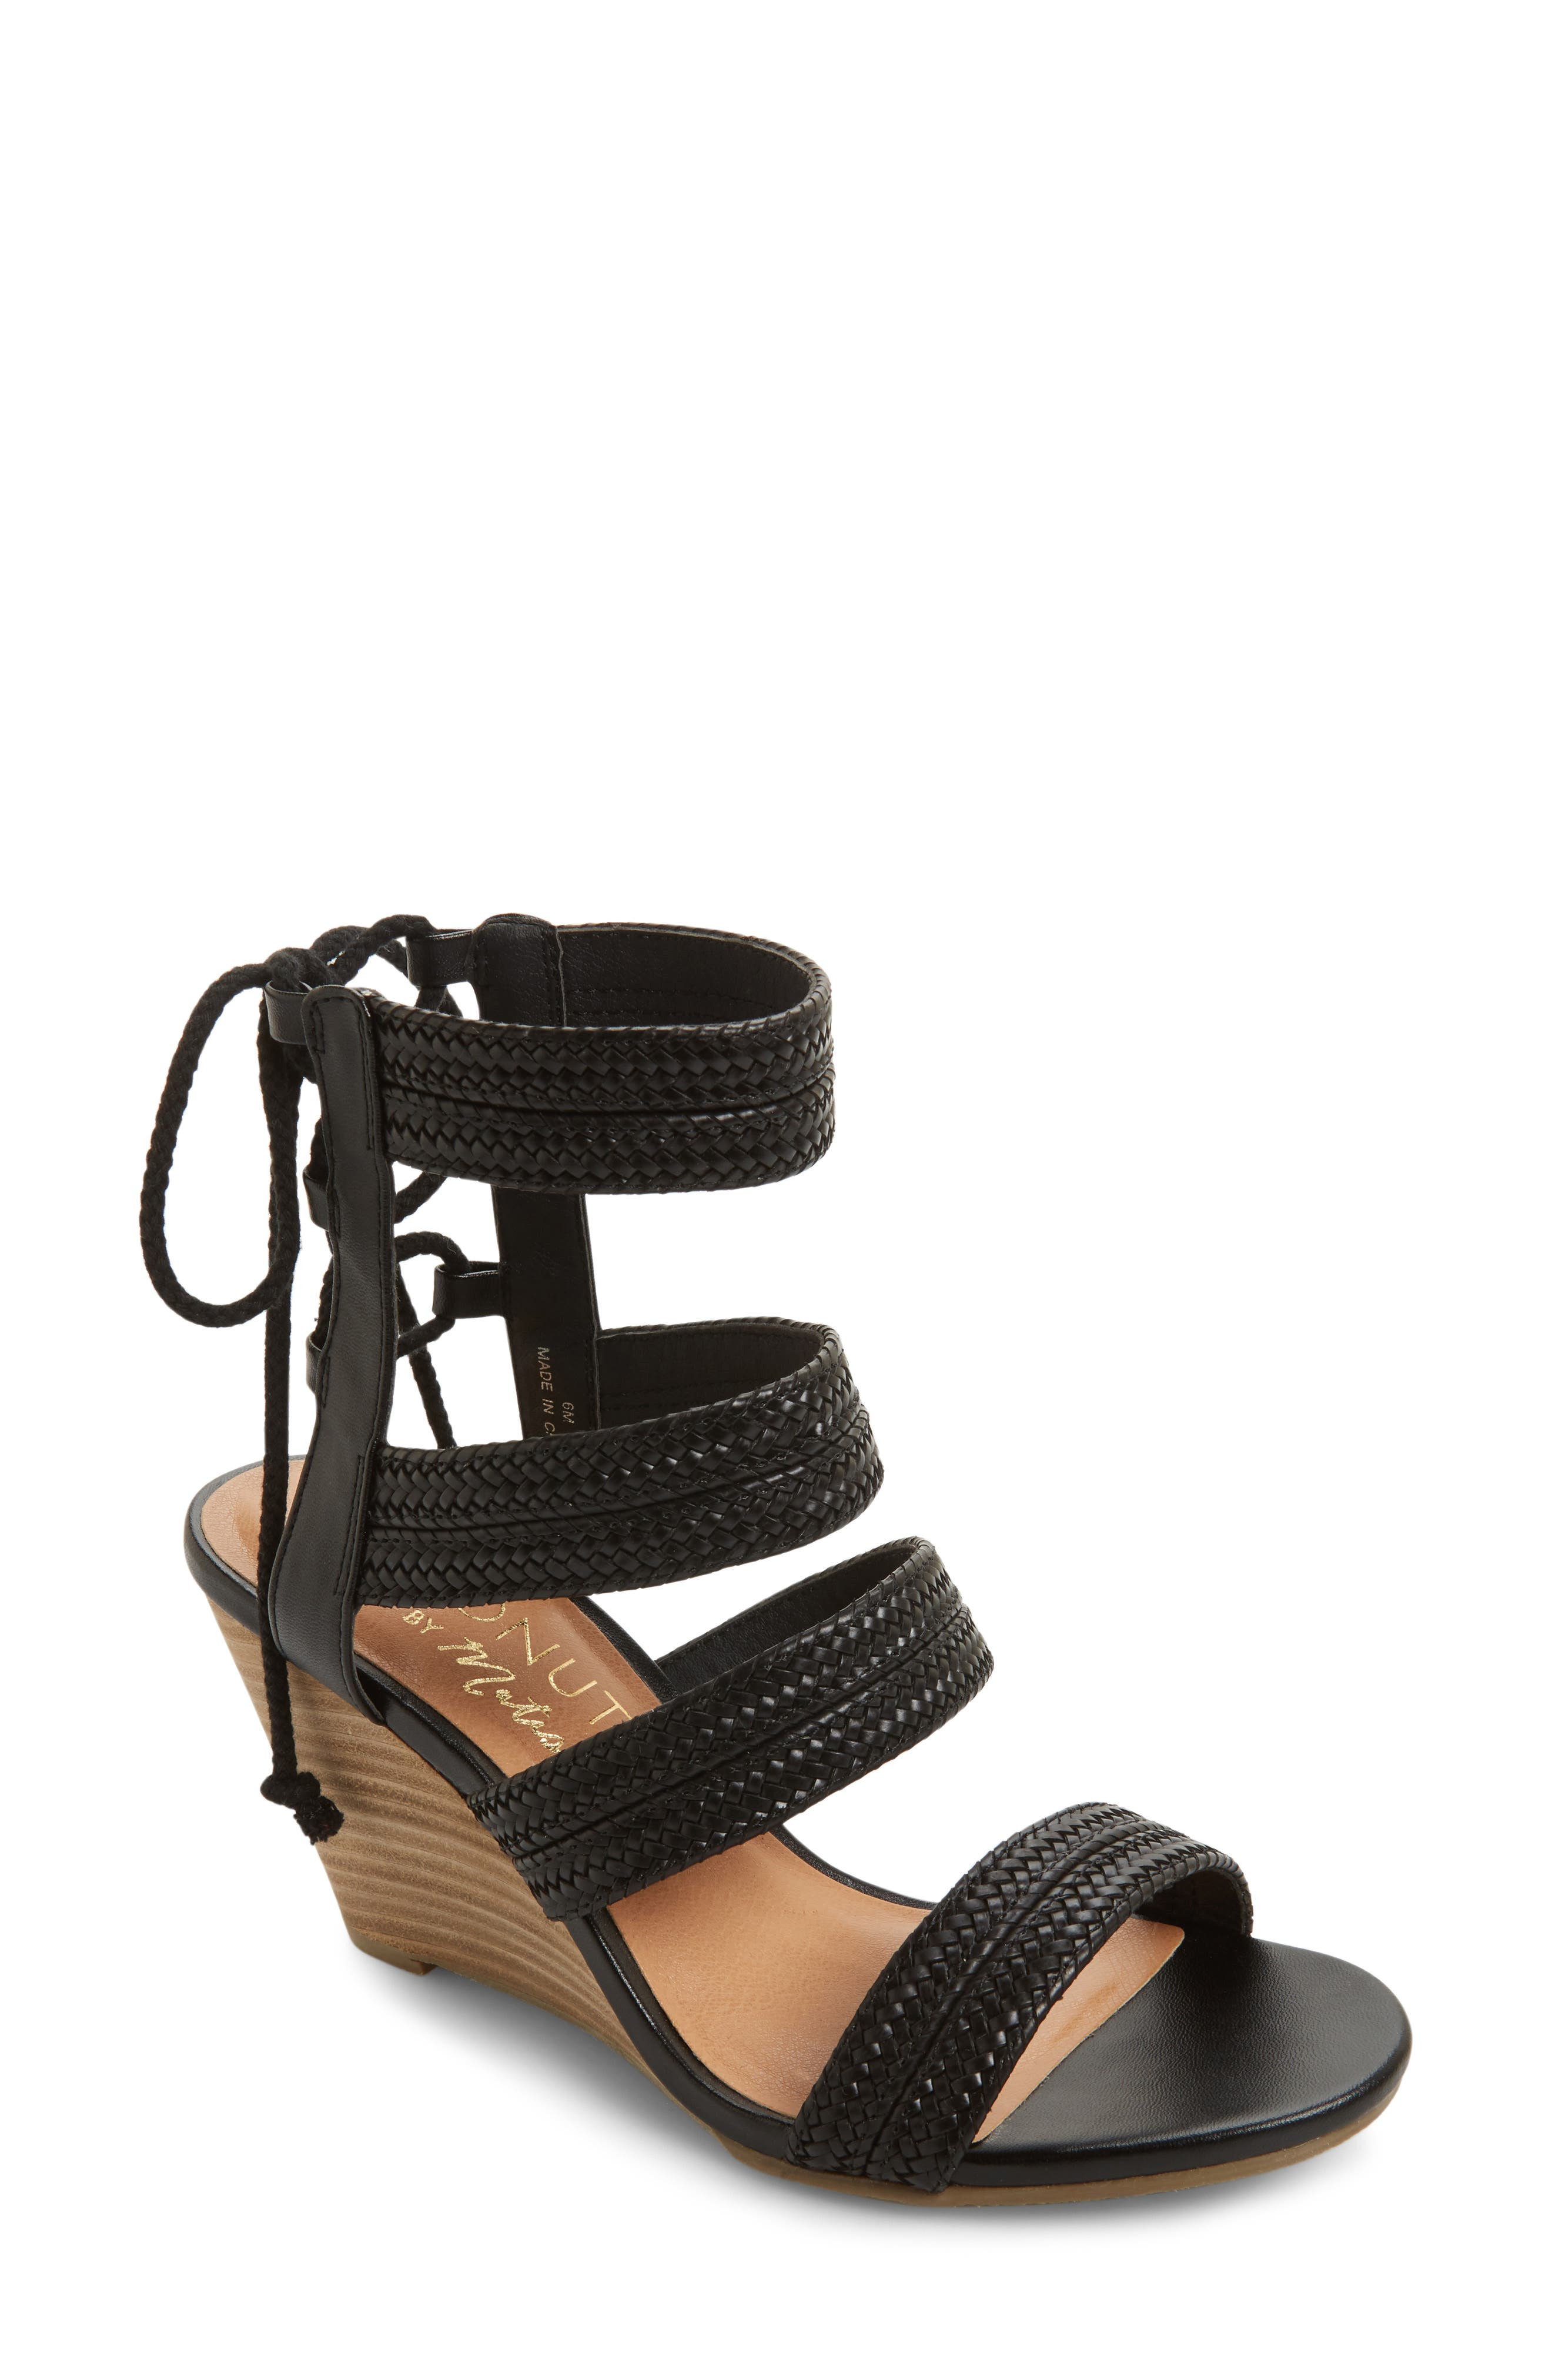 Whimsy Wedge Sandal,                         Main,                         color, 015